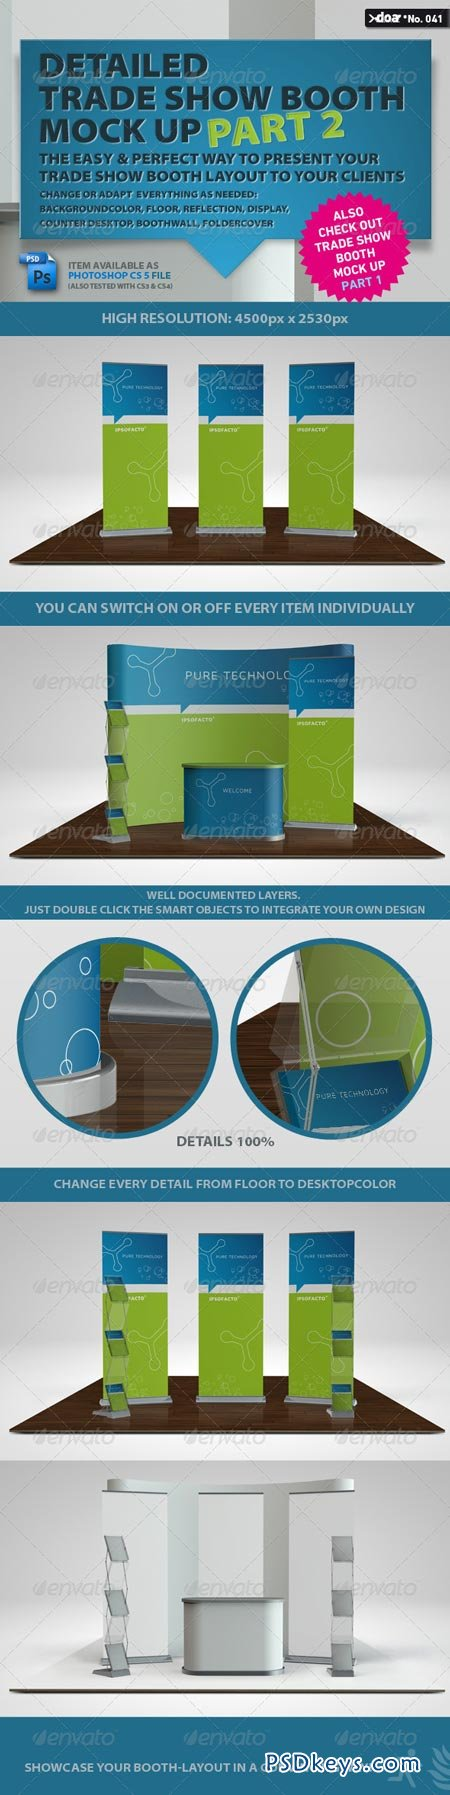 Trade Show Booth Mock Up PART 2 62840